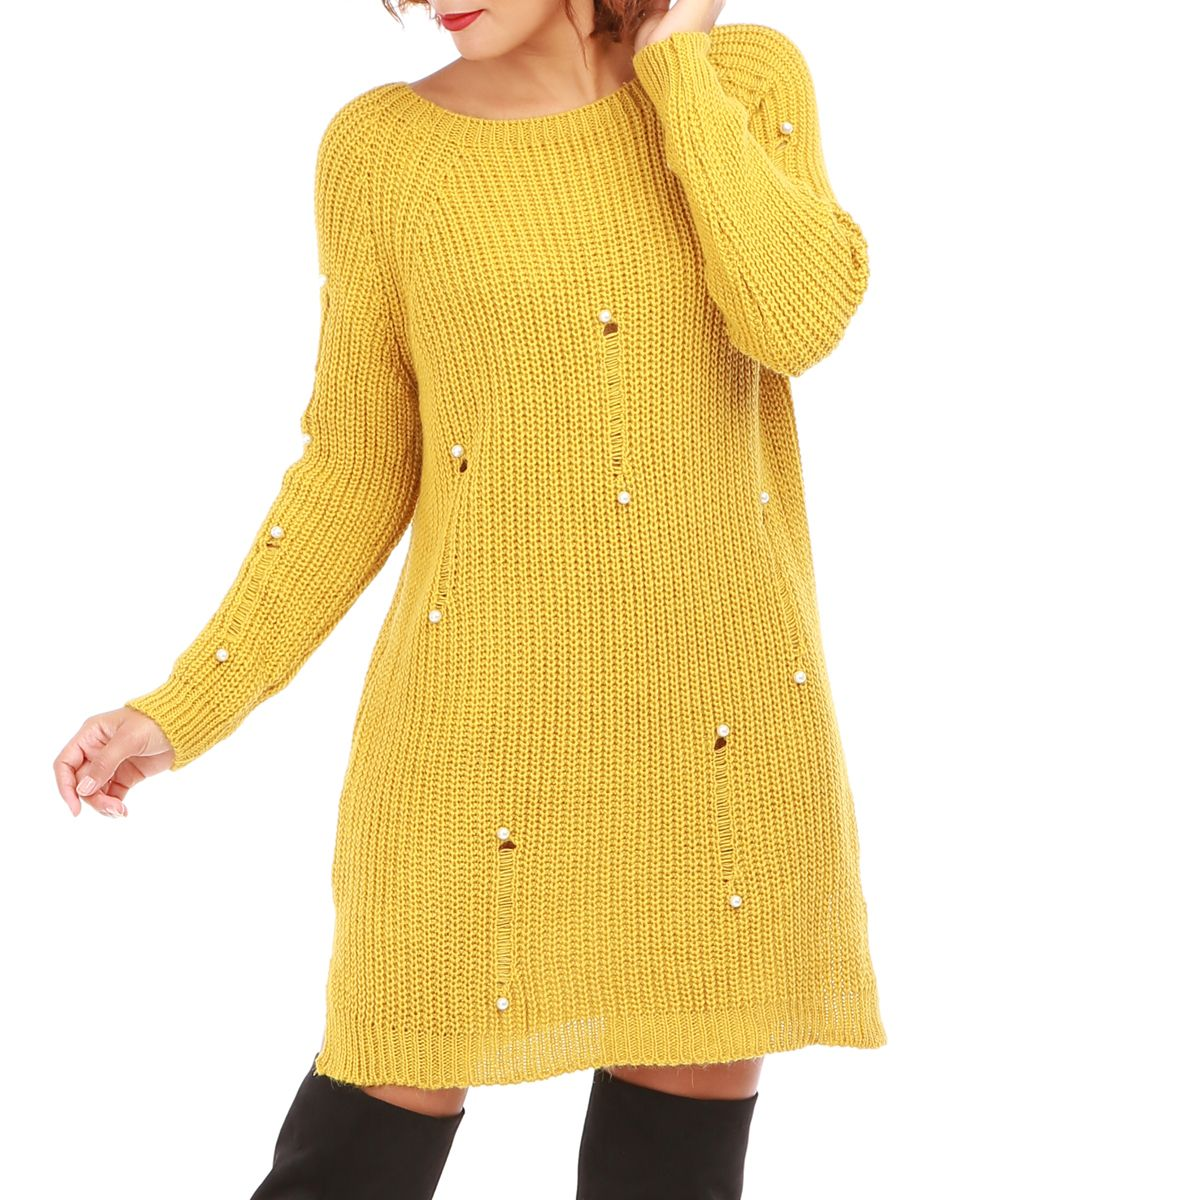 Robe pull femme jaune moutarde